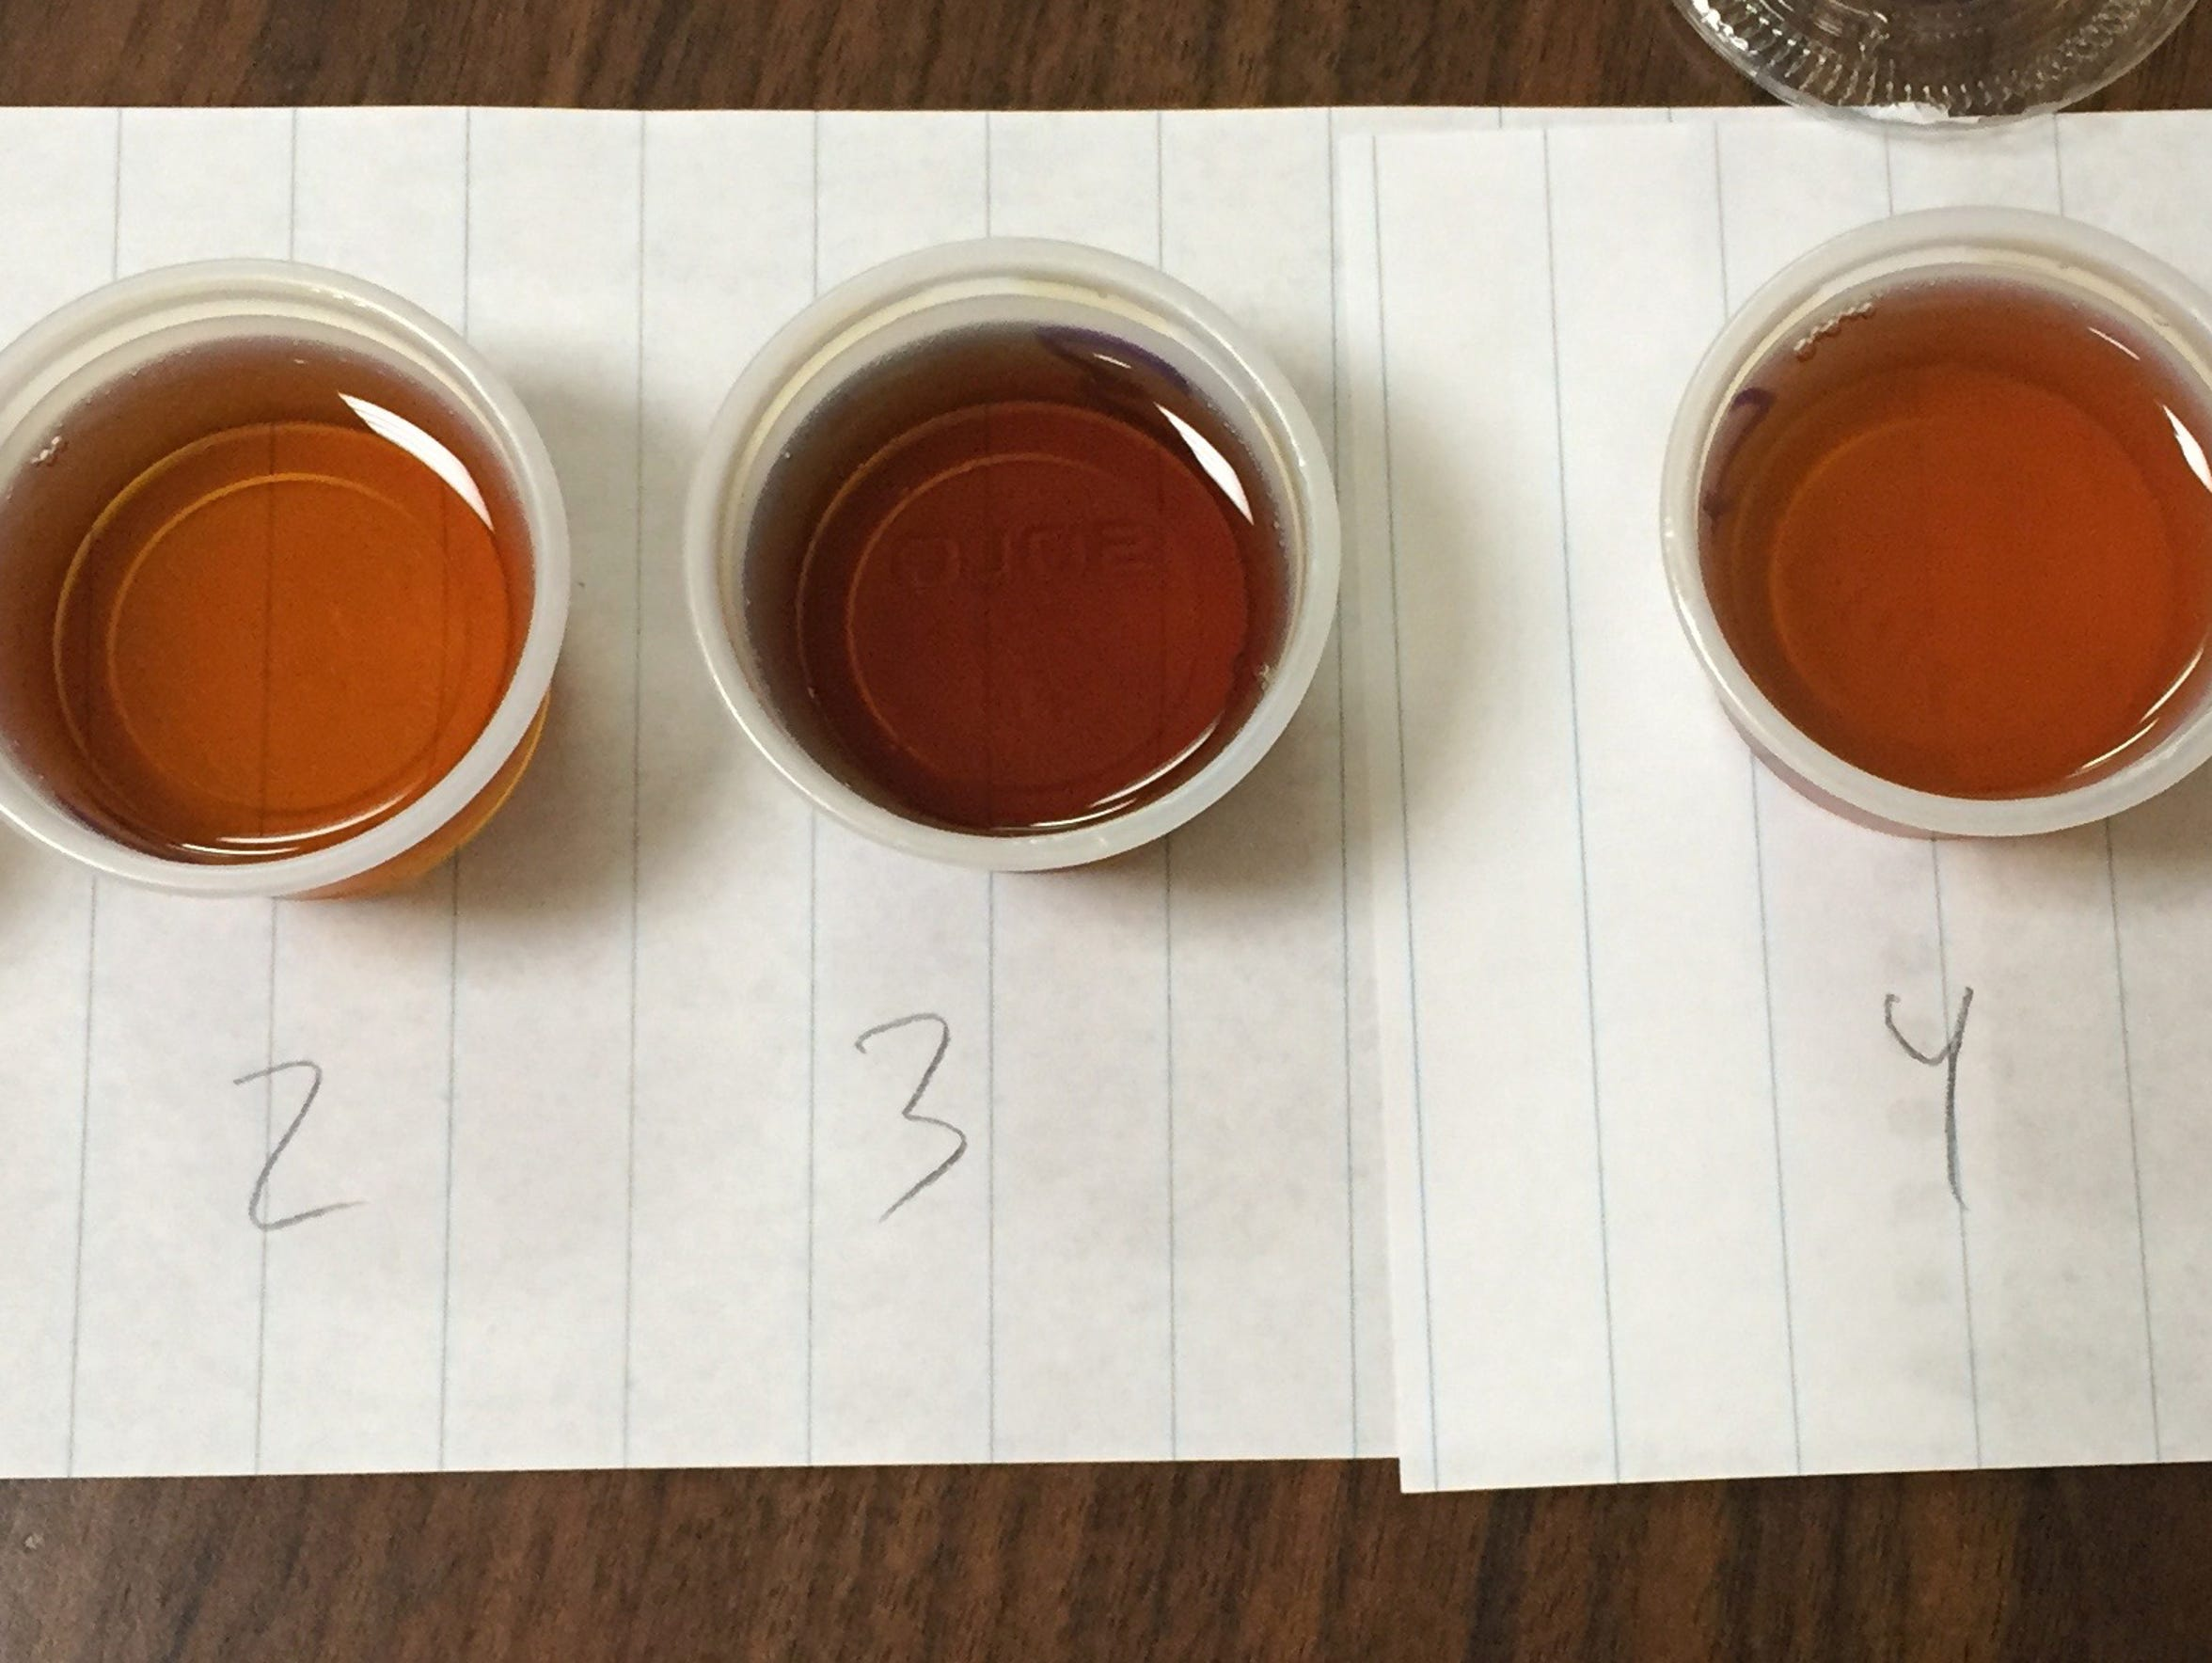 A News Leader blind tasting of Highland County maple